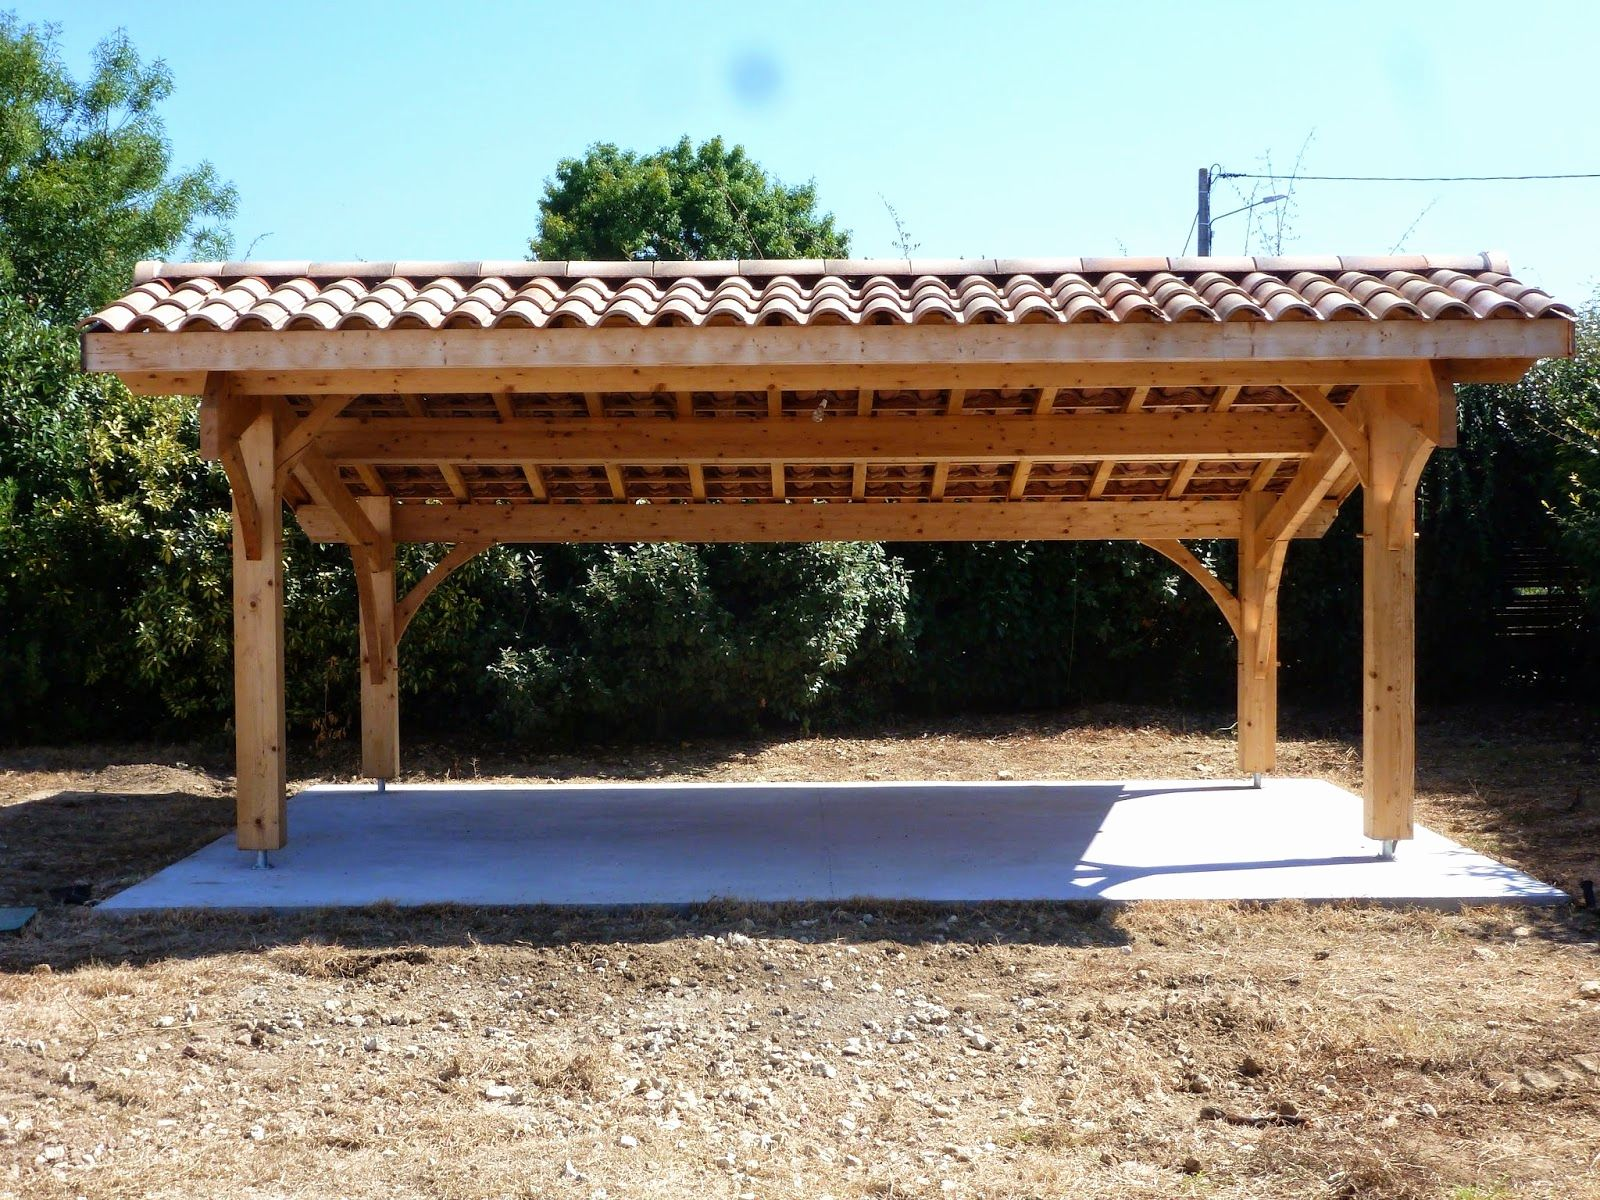 Carport Double Unopiu Best Of Carport Bois Toit Double Pente Carport Bois Toit Bois